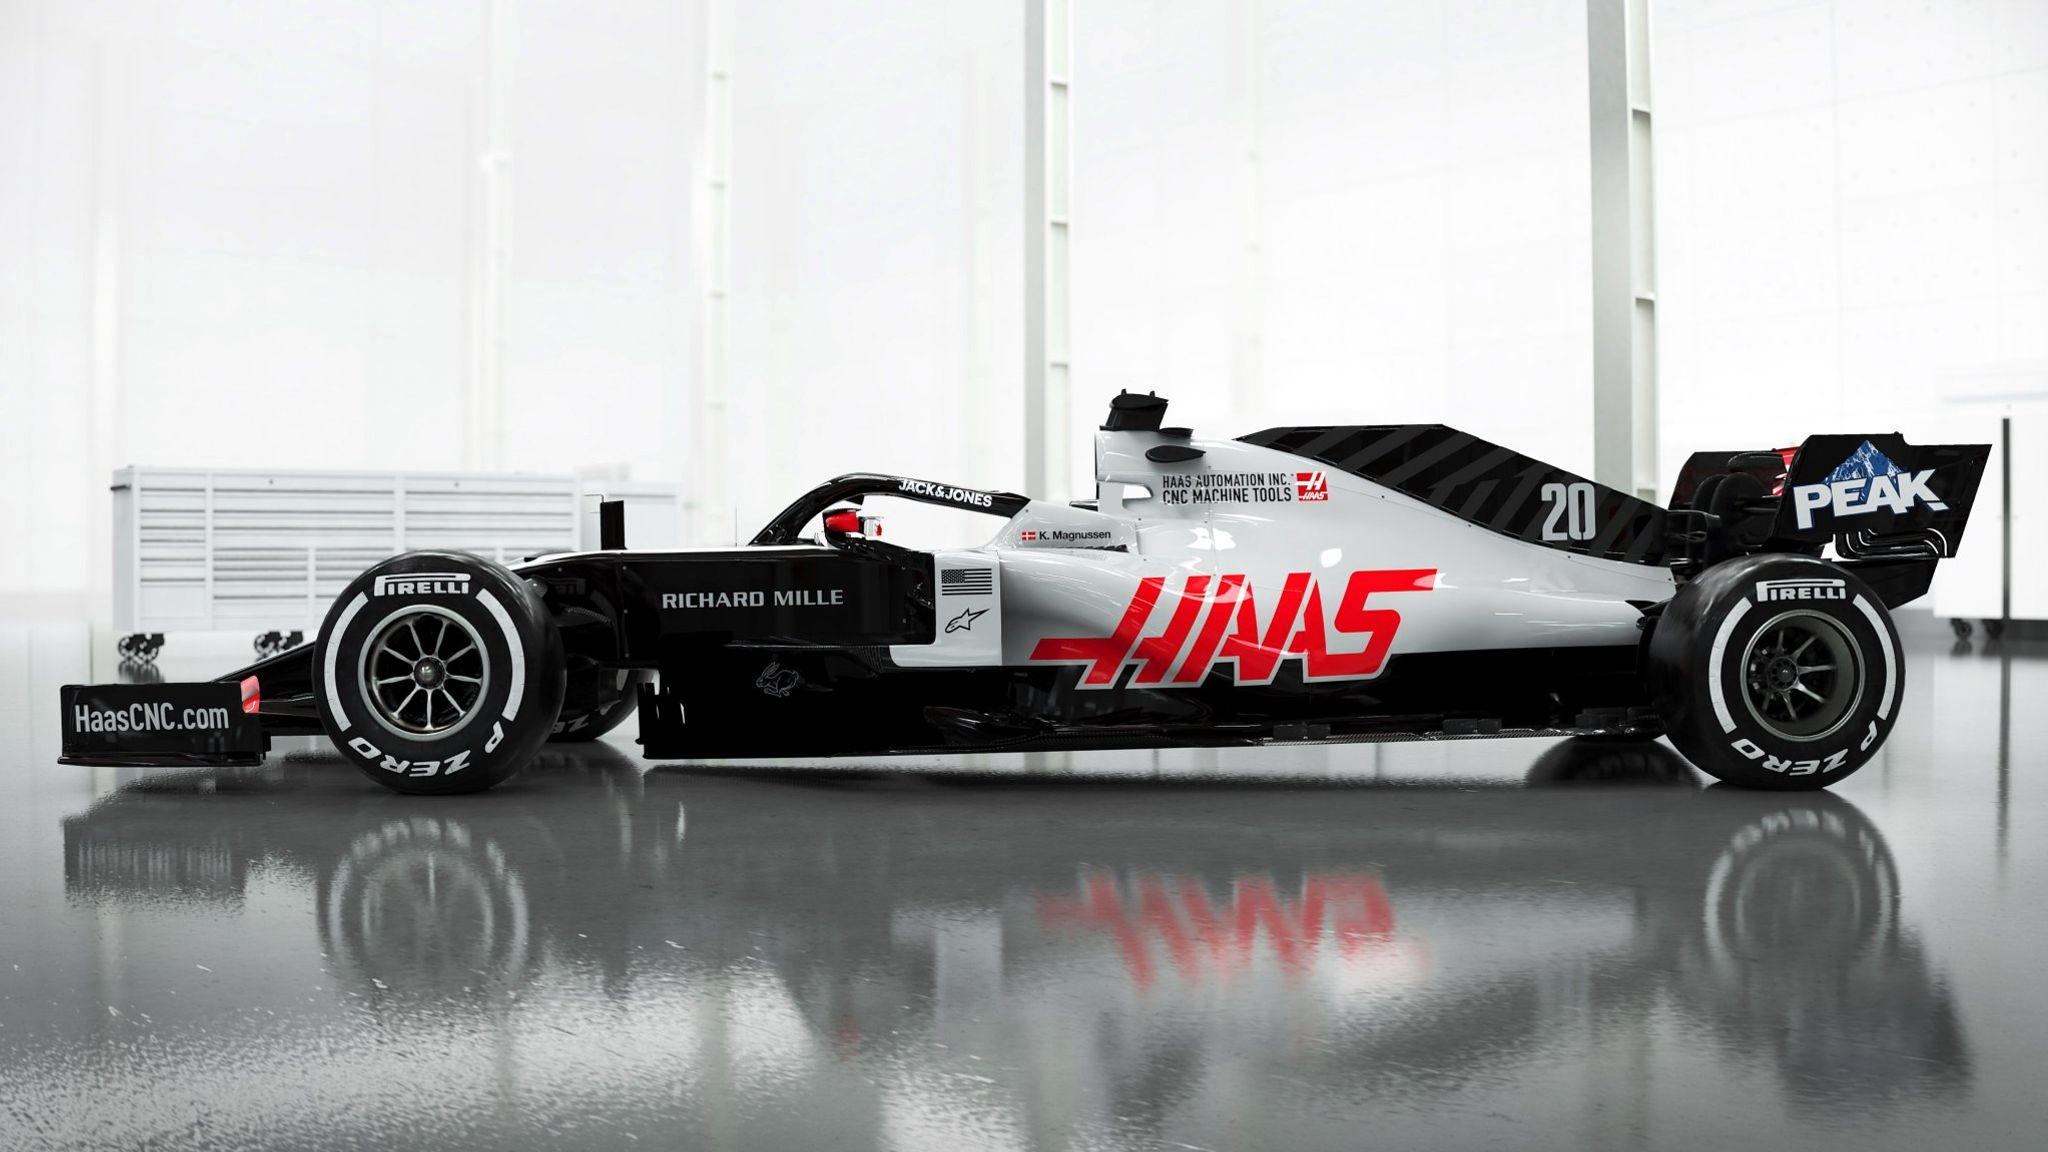 F1 2020 S New Cars Revealed Introducing The Latest Contenders F1 News